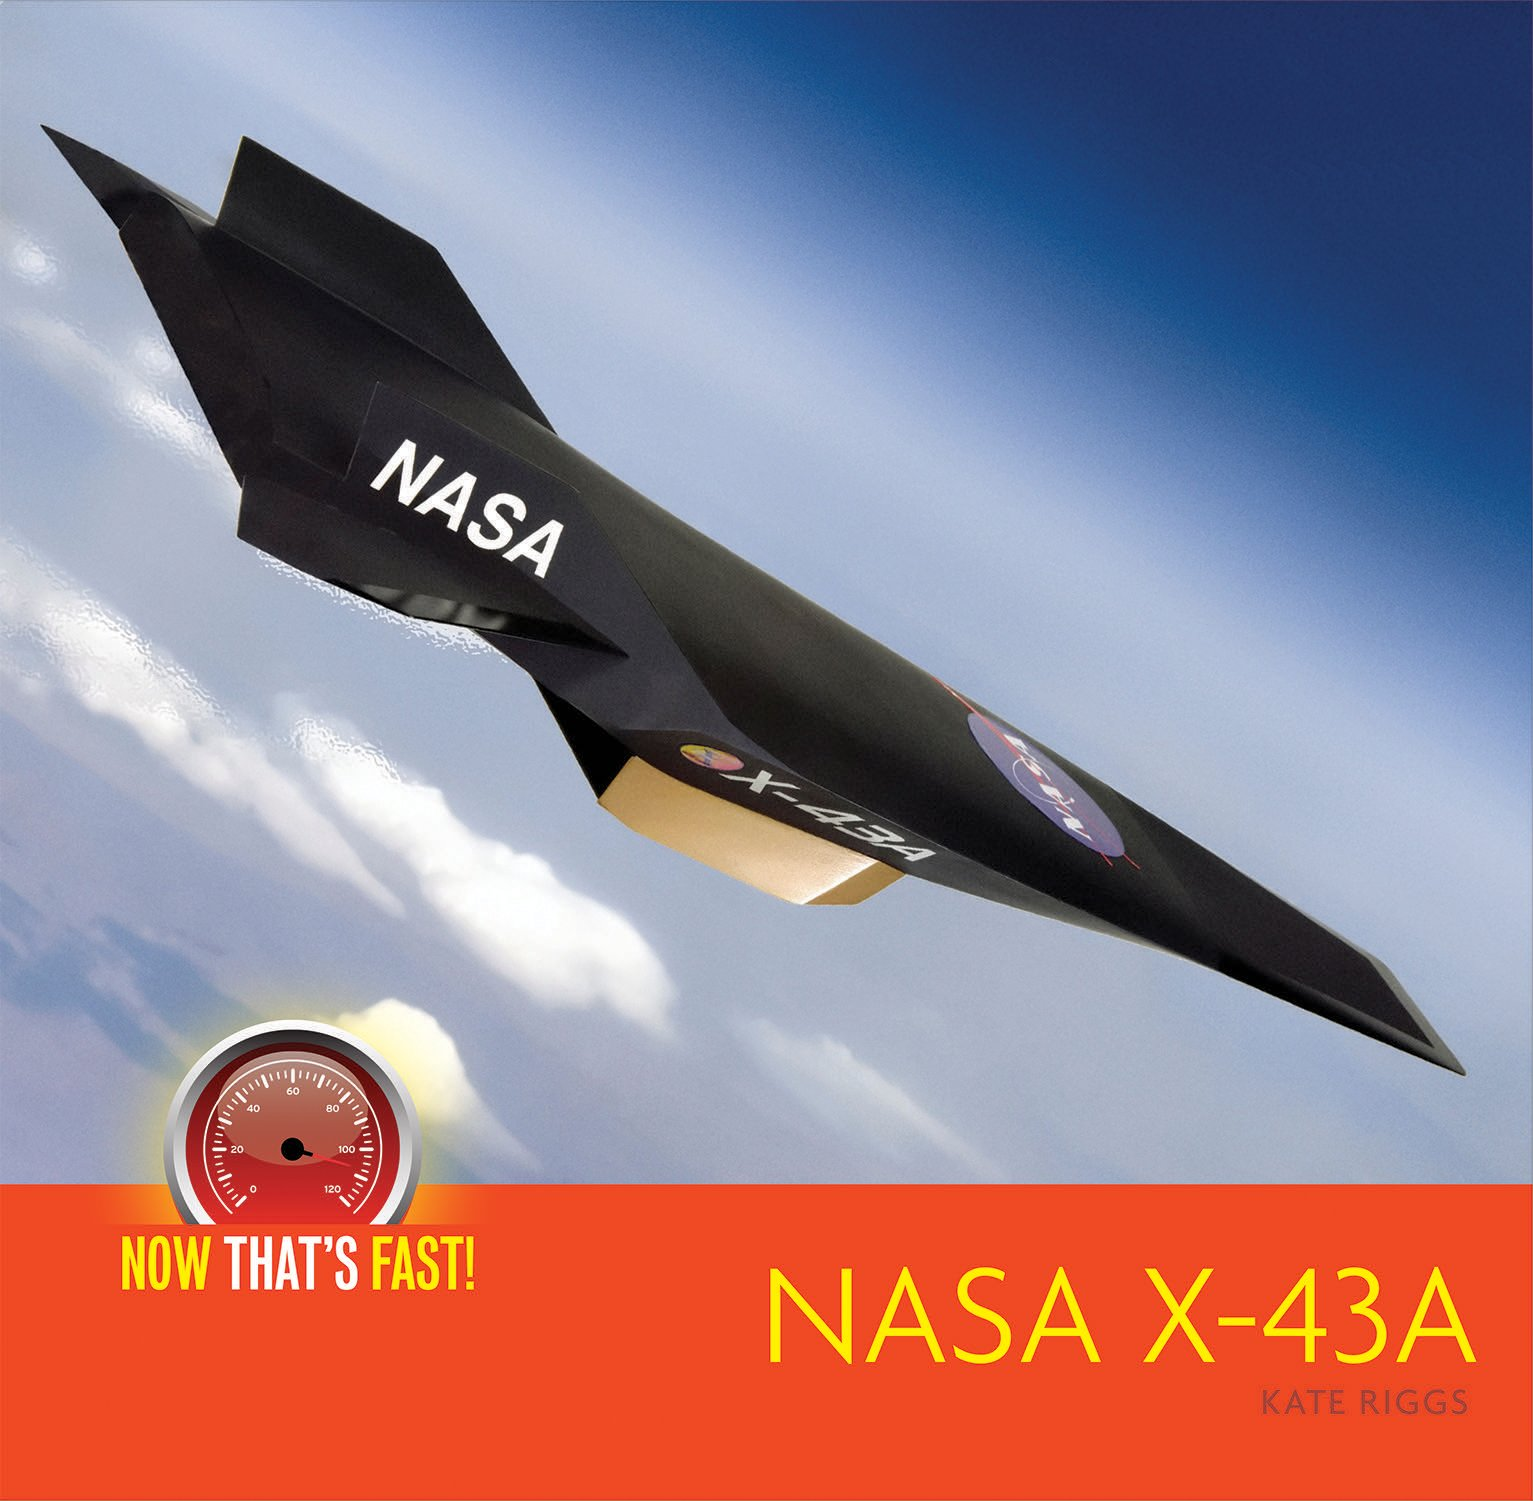 NASA X-43 A (unmanned aircraft) (Now That's Fast!)